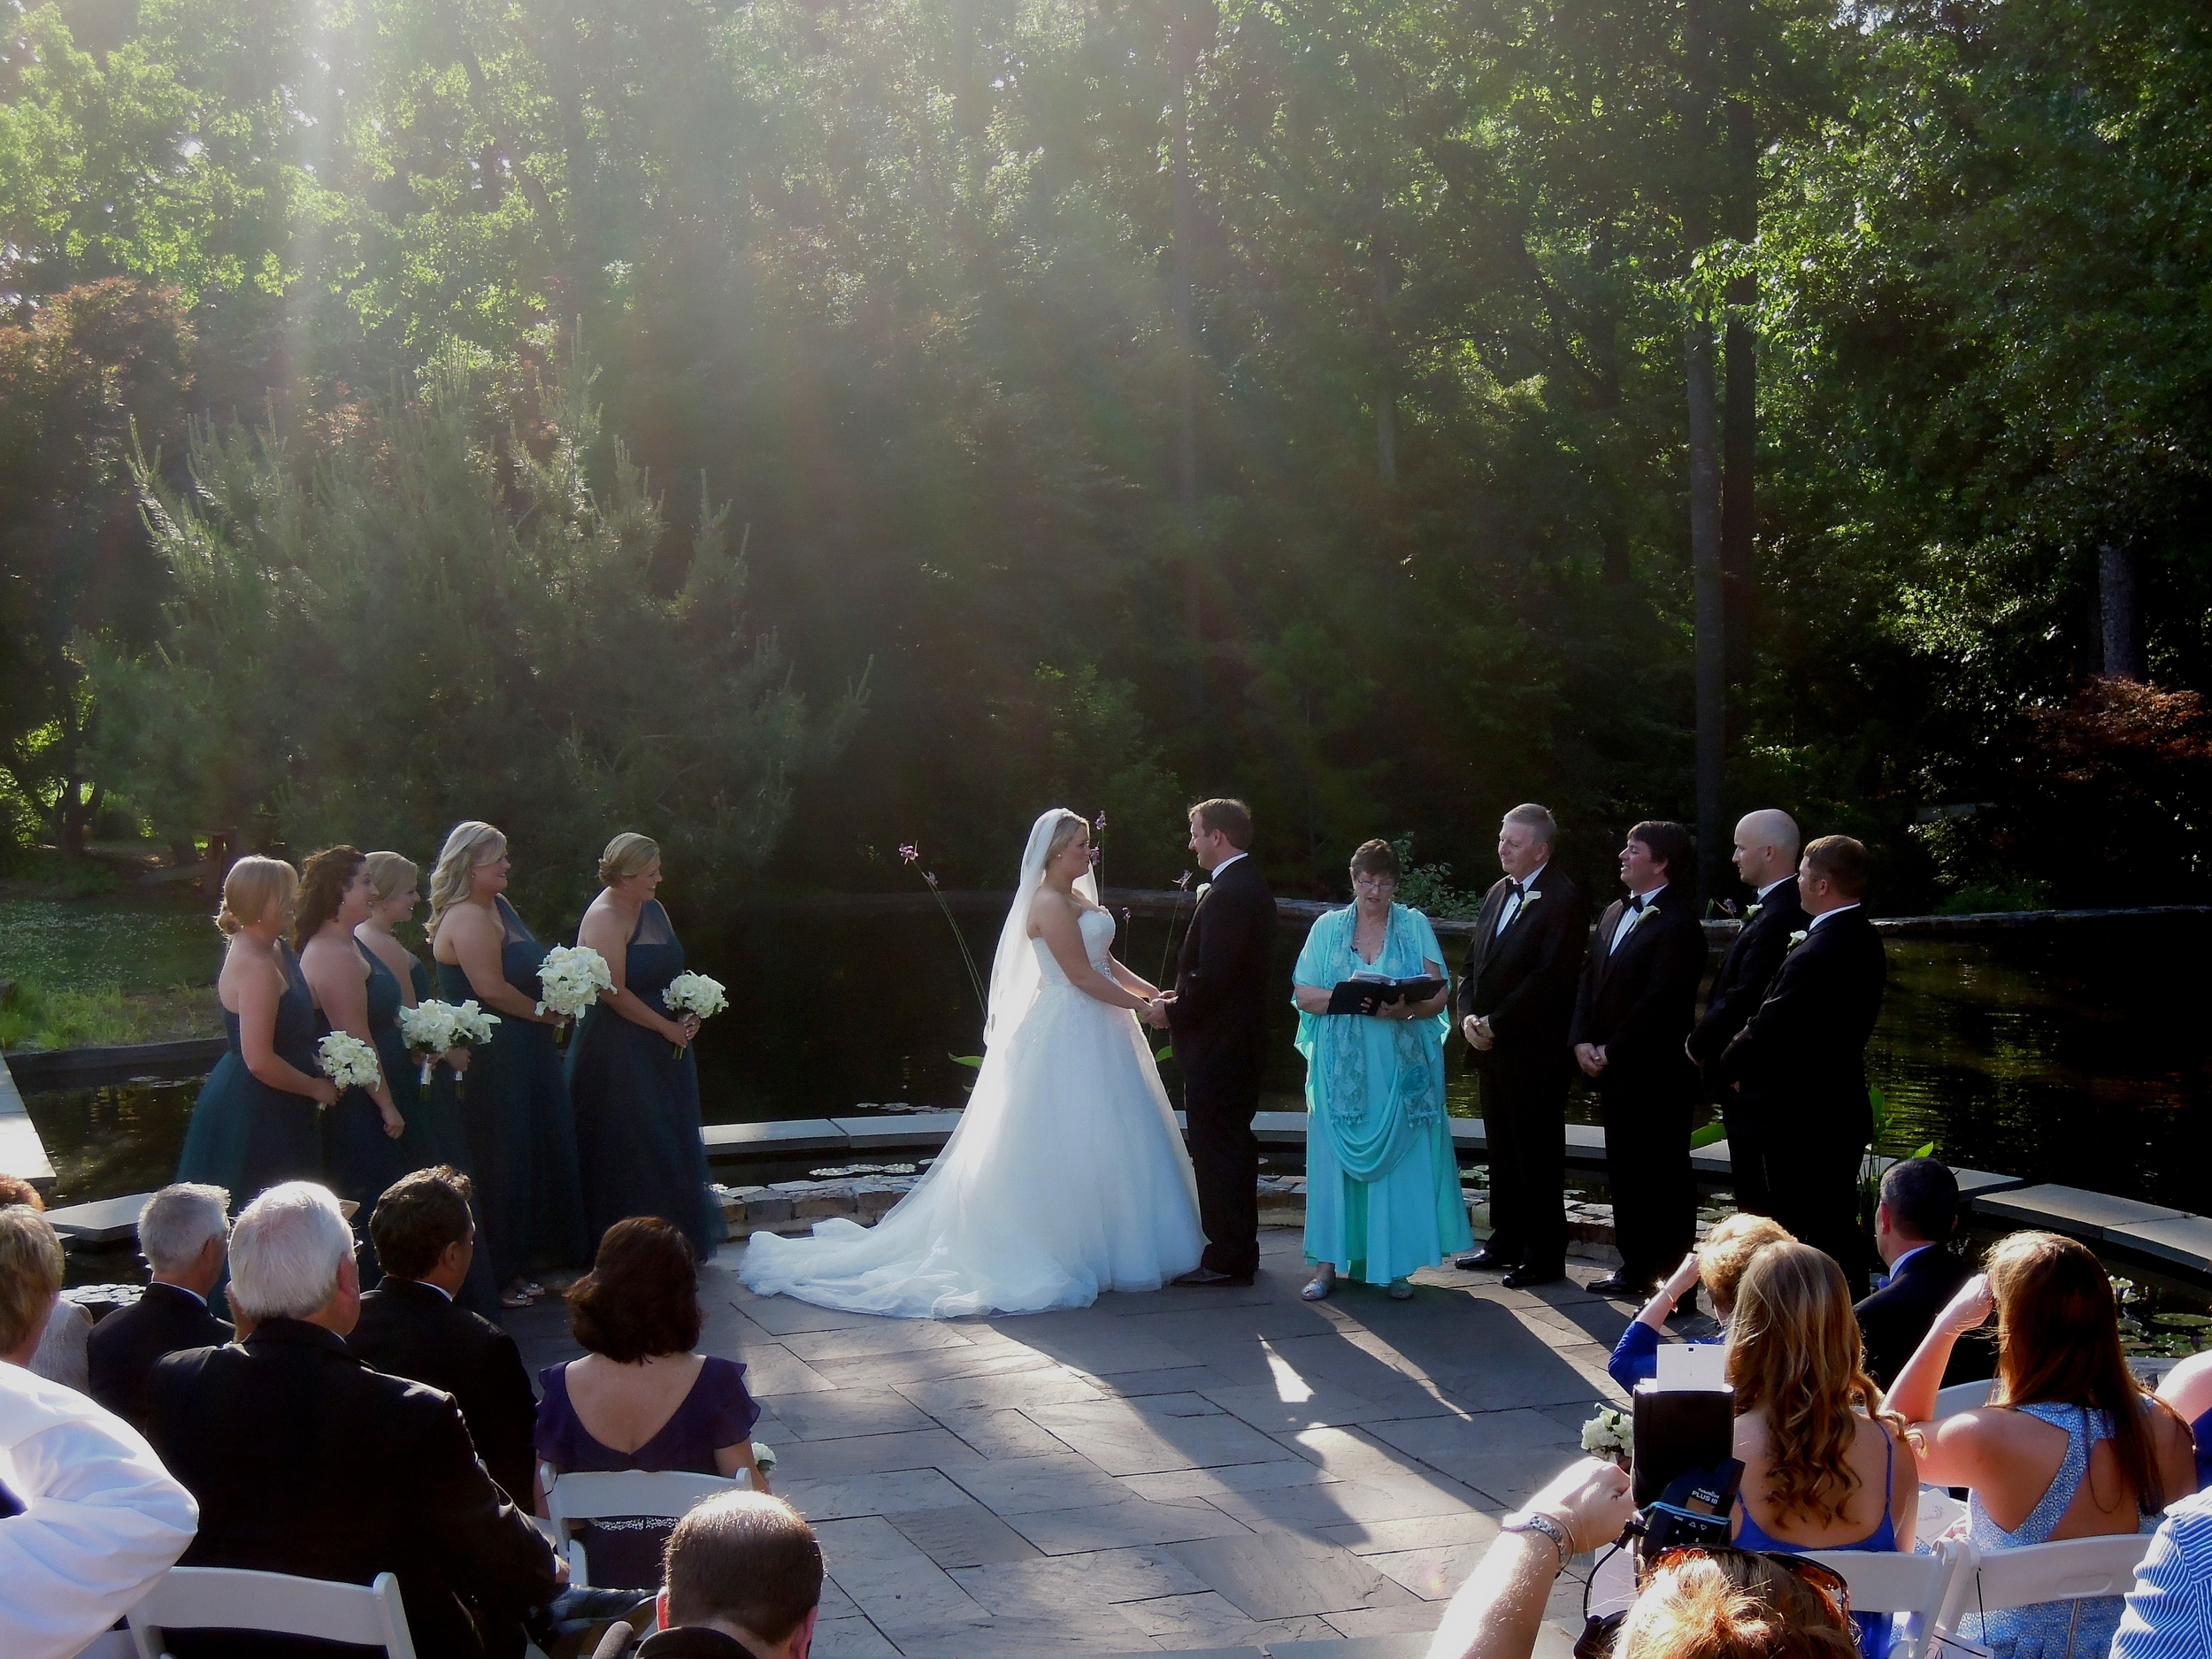 Dreamy wedding ceremony at Duke Gardens Angle Amphitheater in Durham